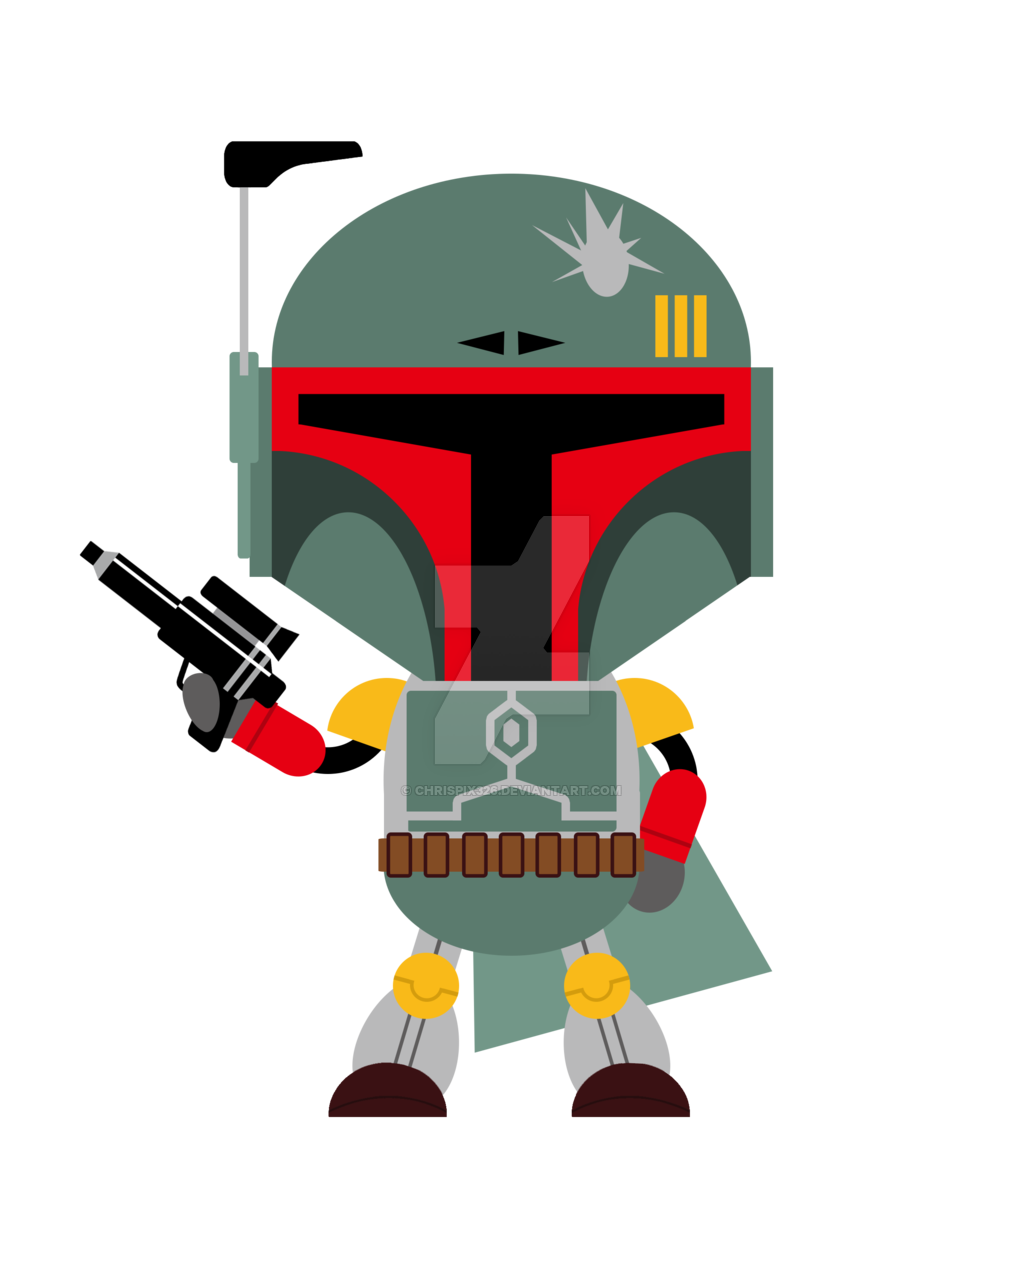 Starwars clipart. A lot of free